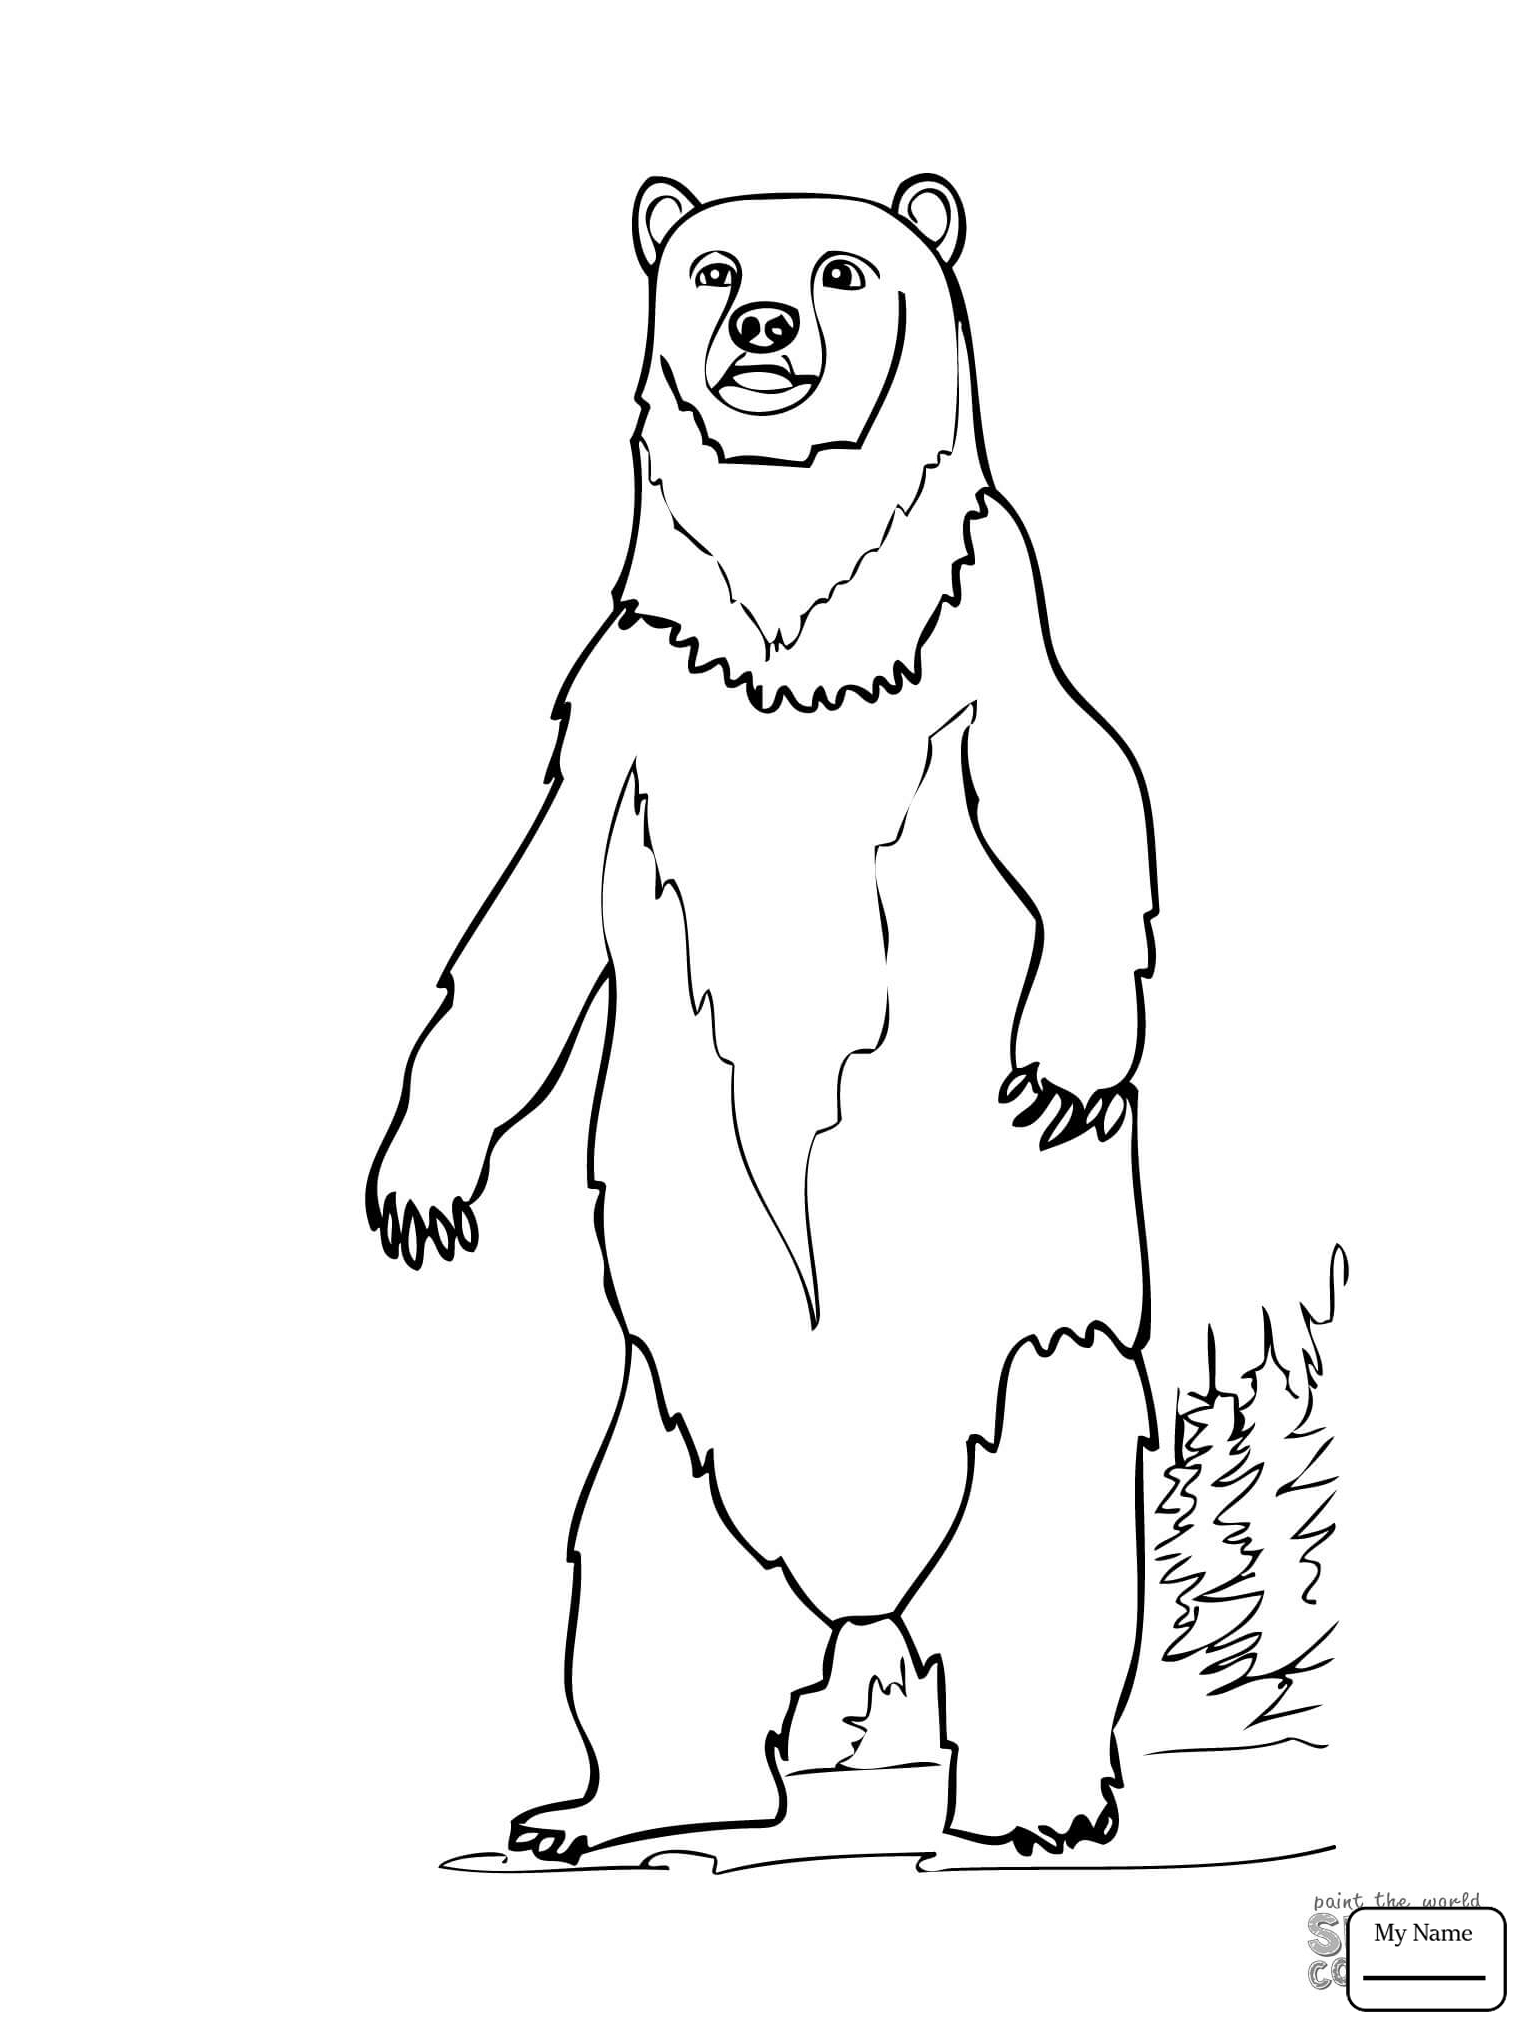 grizzly bear drawing step by step easy drawing ideas step by step bear step grizzly drawing by step